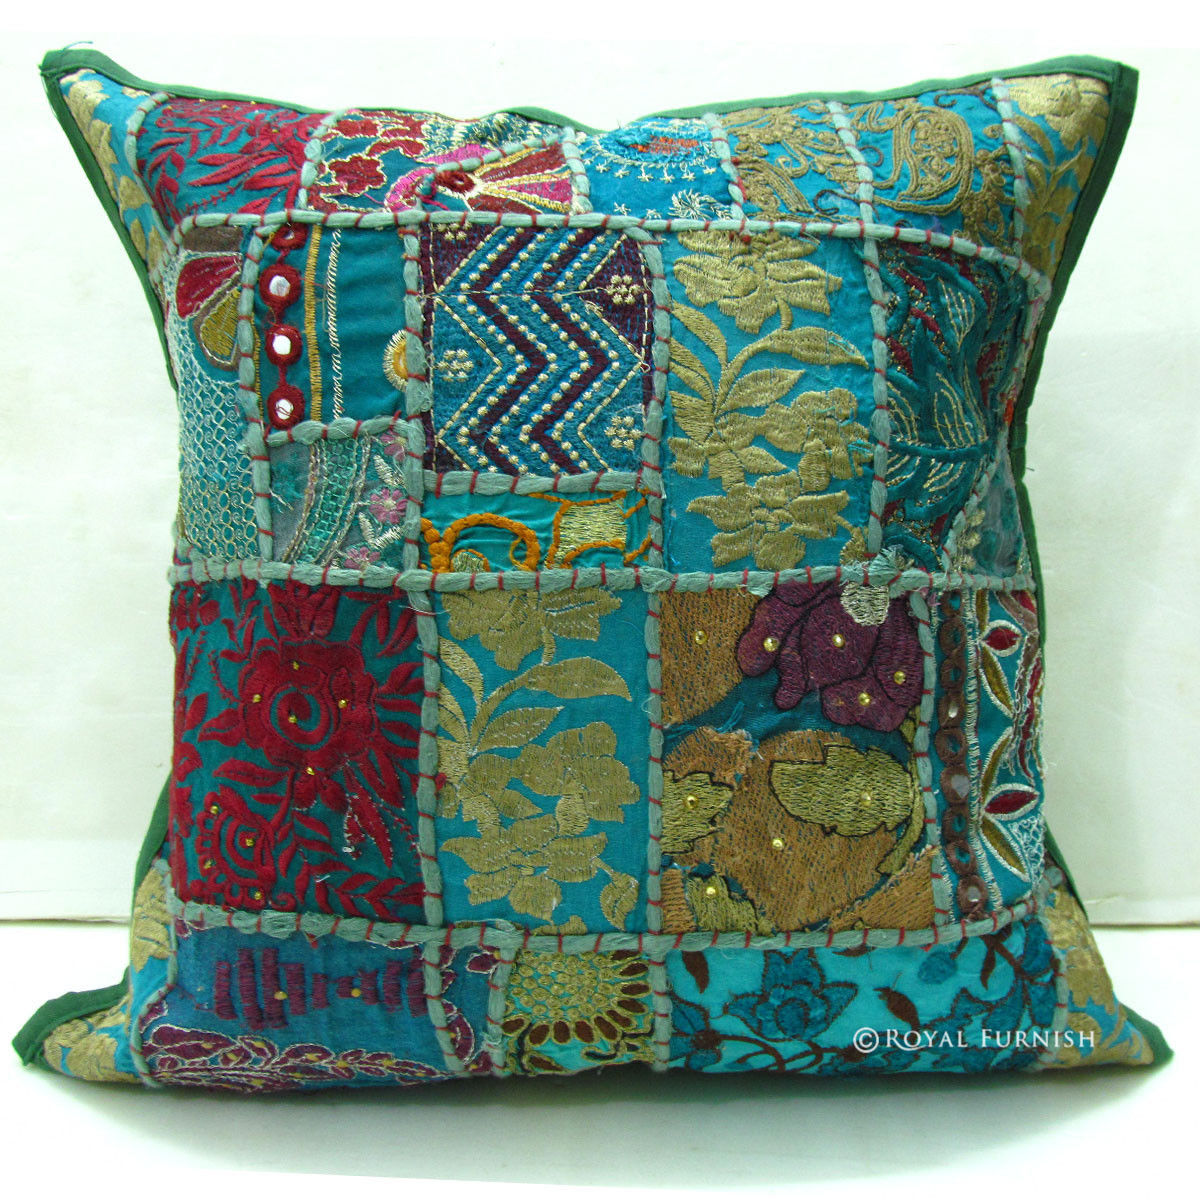 Tribal bohemian patchwork decorative throw pillow for Decor pillows